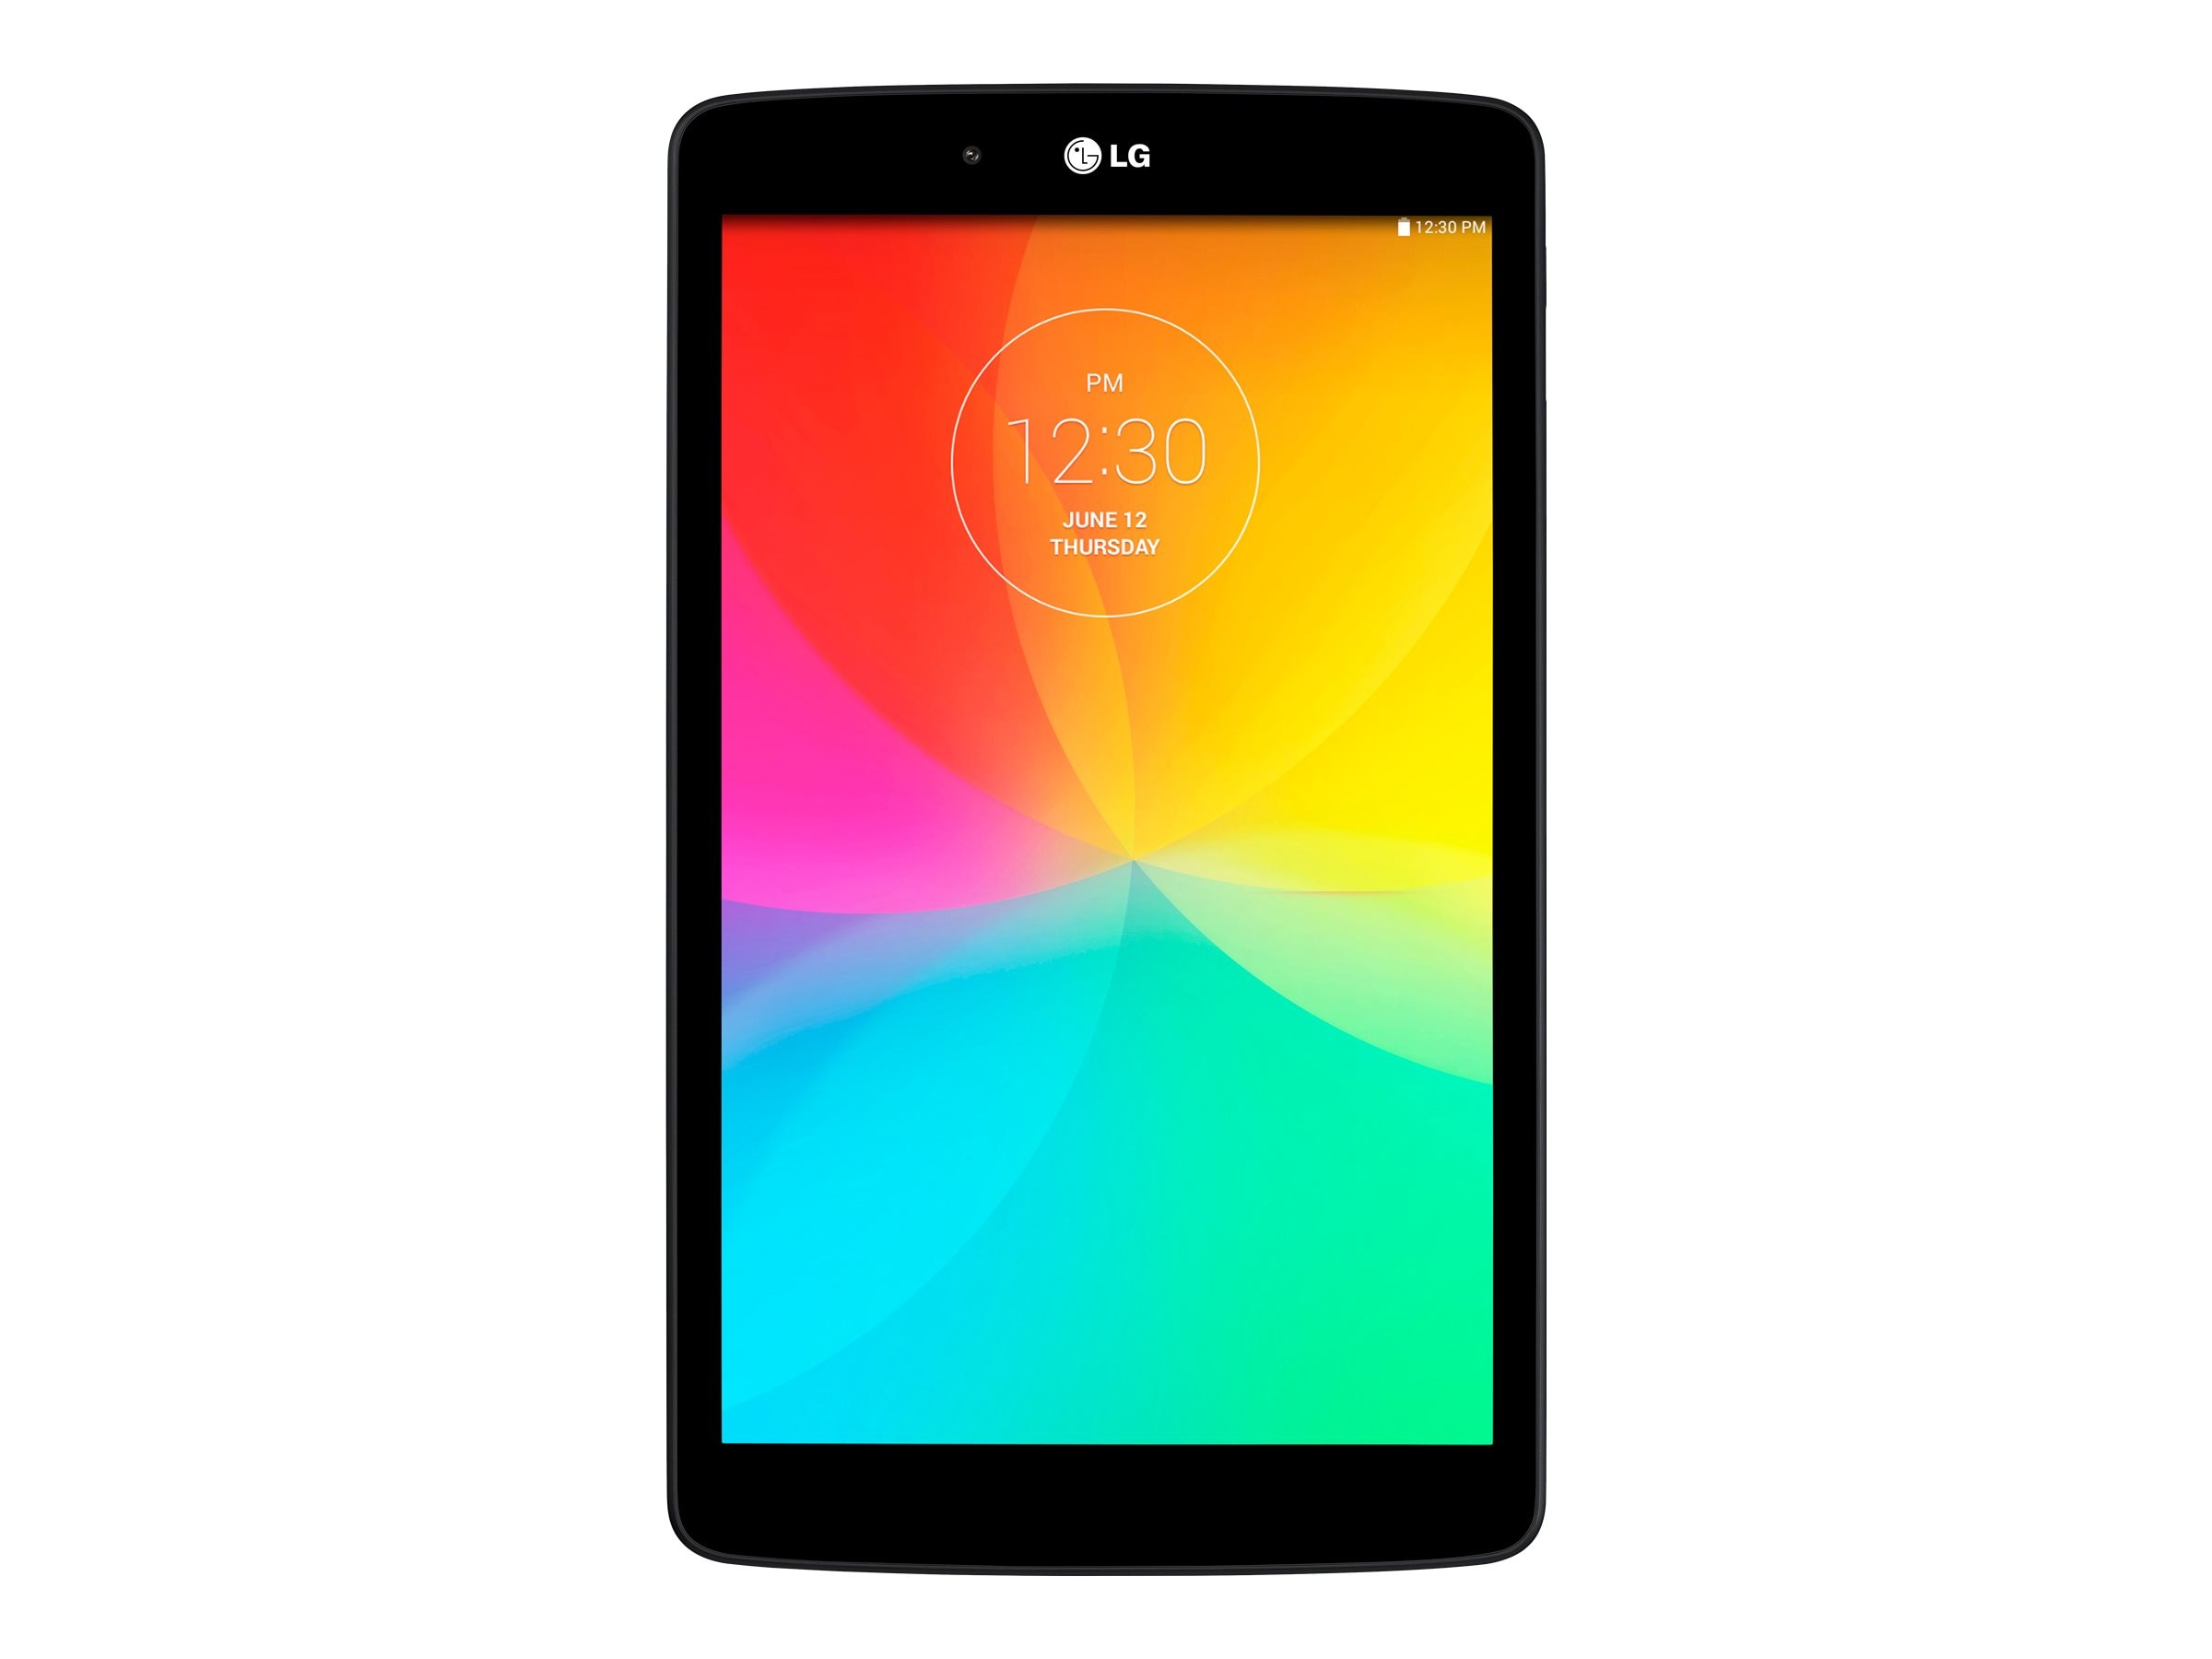 LG G Pad Snapdragon 400 1.2GHz 1GB 16GB abgn BT 2xWC 8 WXGA MT Android 5.0 Black, LGV480.AUSABK, 23729401, Tablets